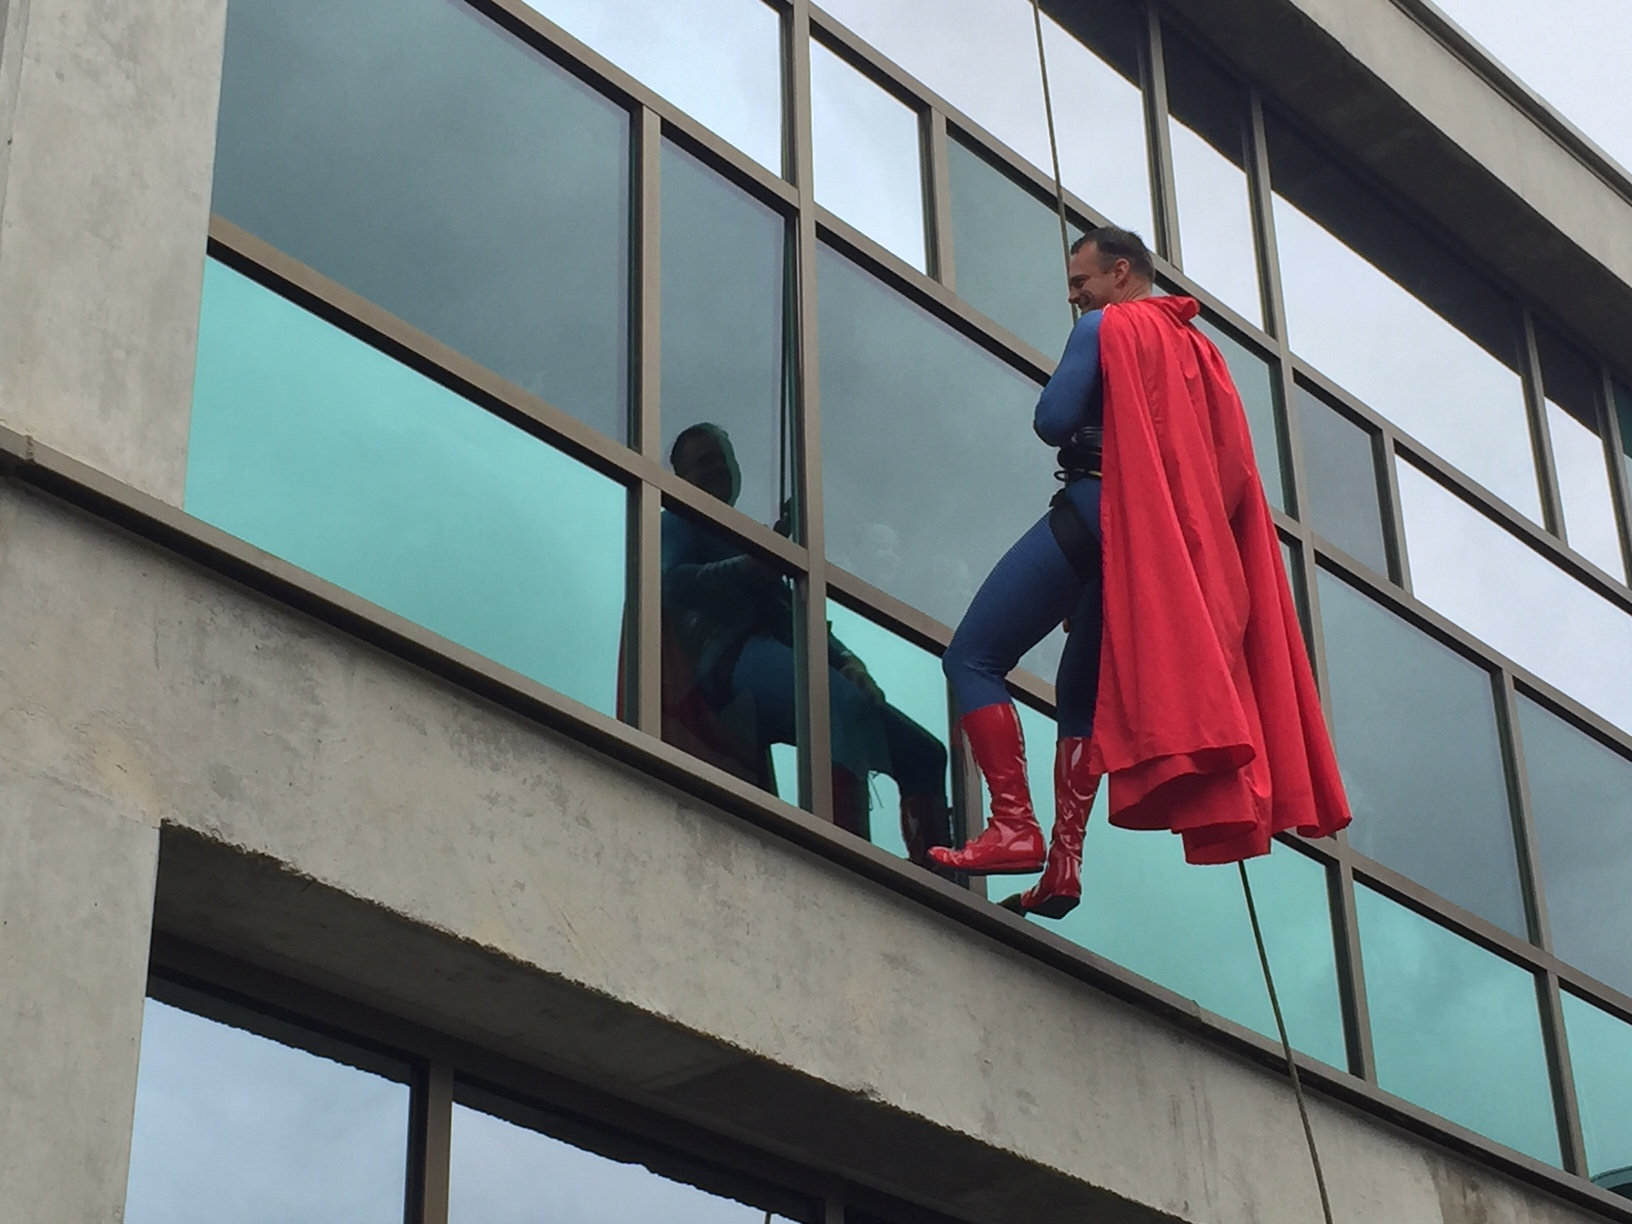 Superman rappeling down a wall_293696